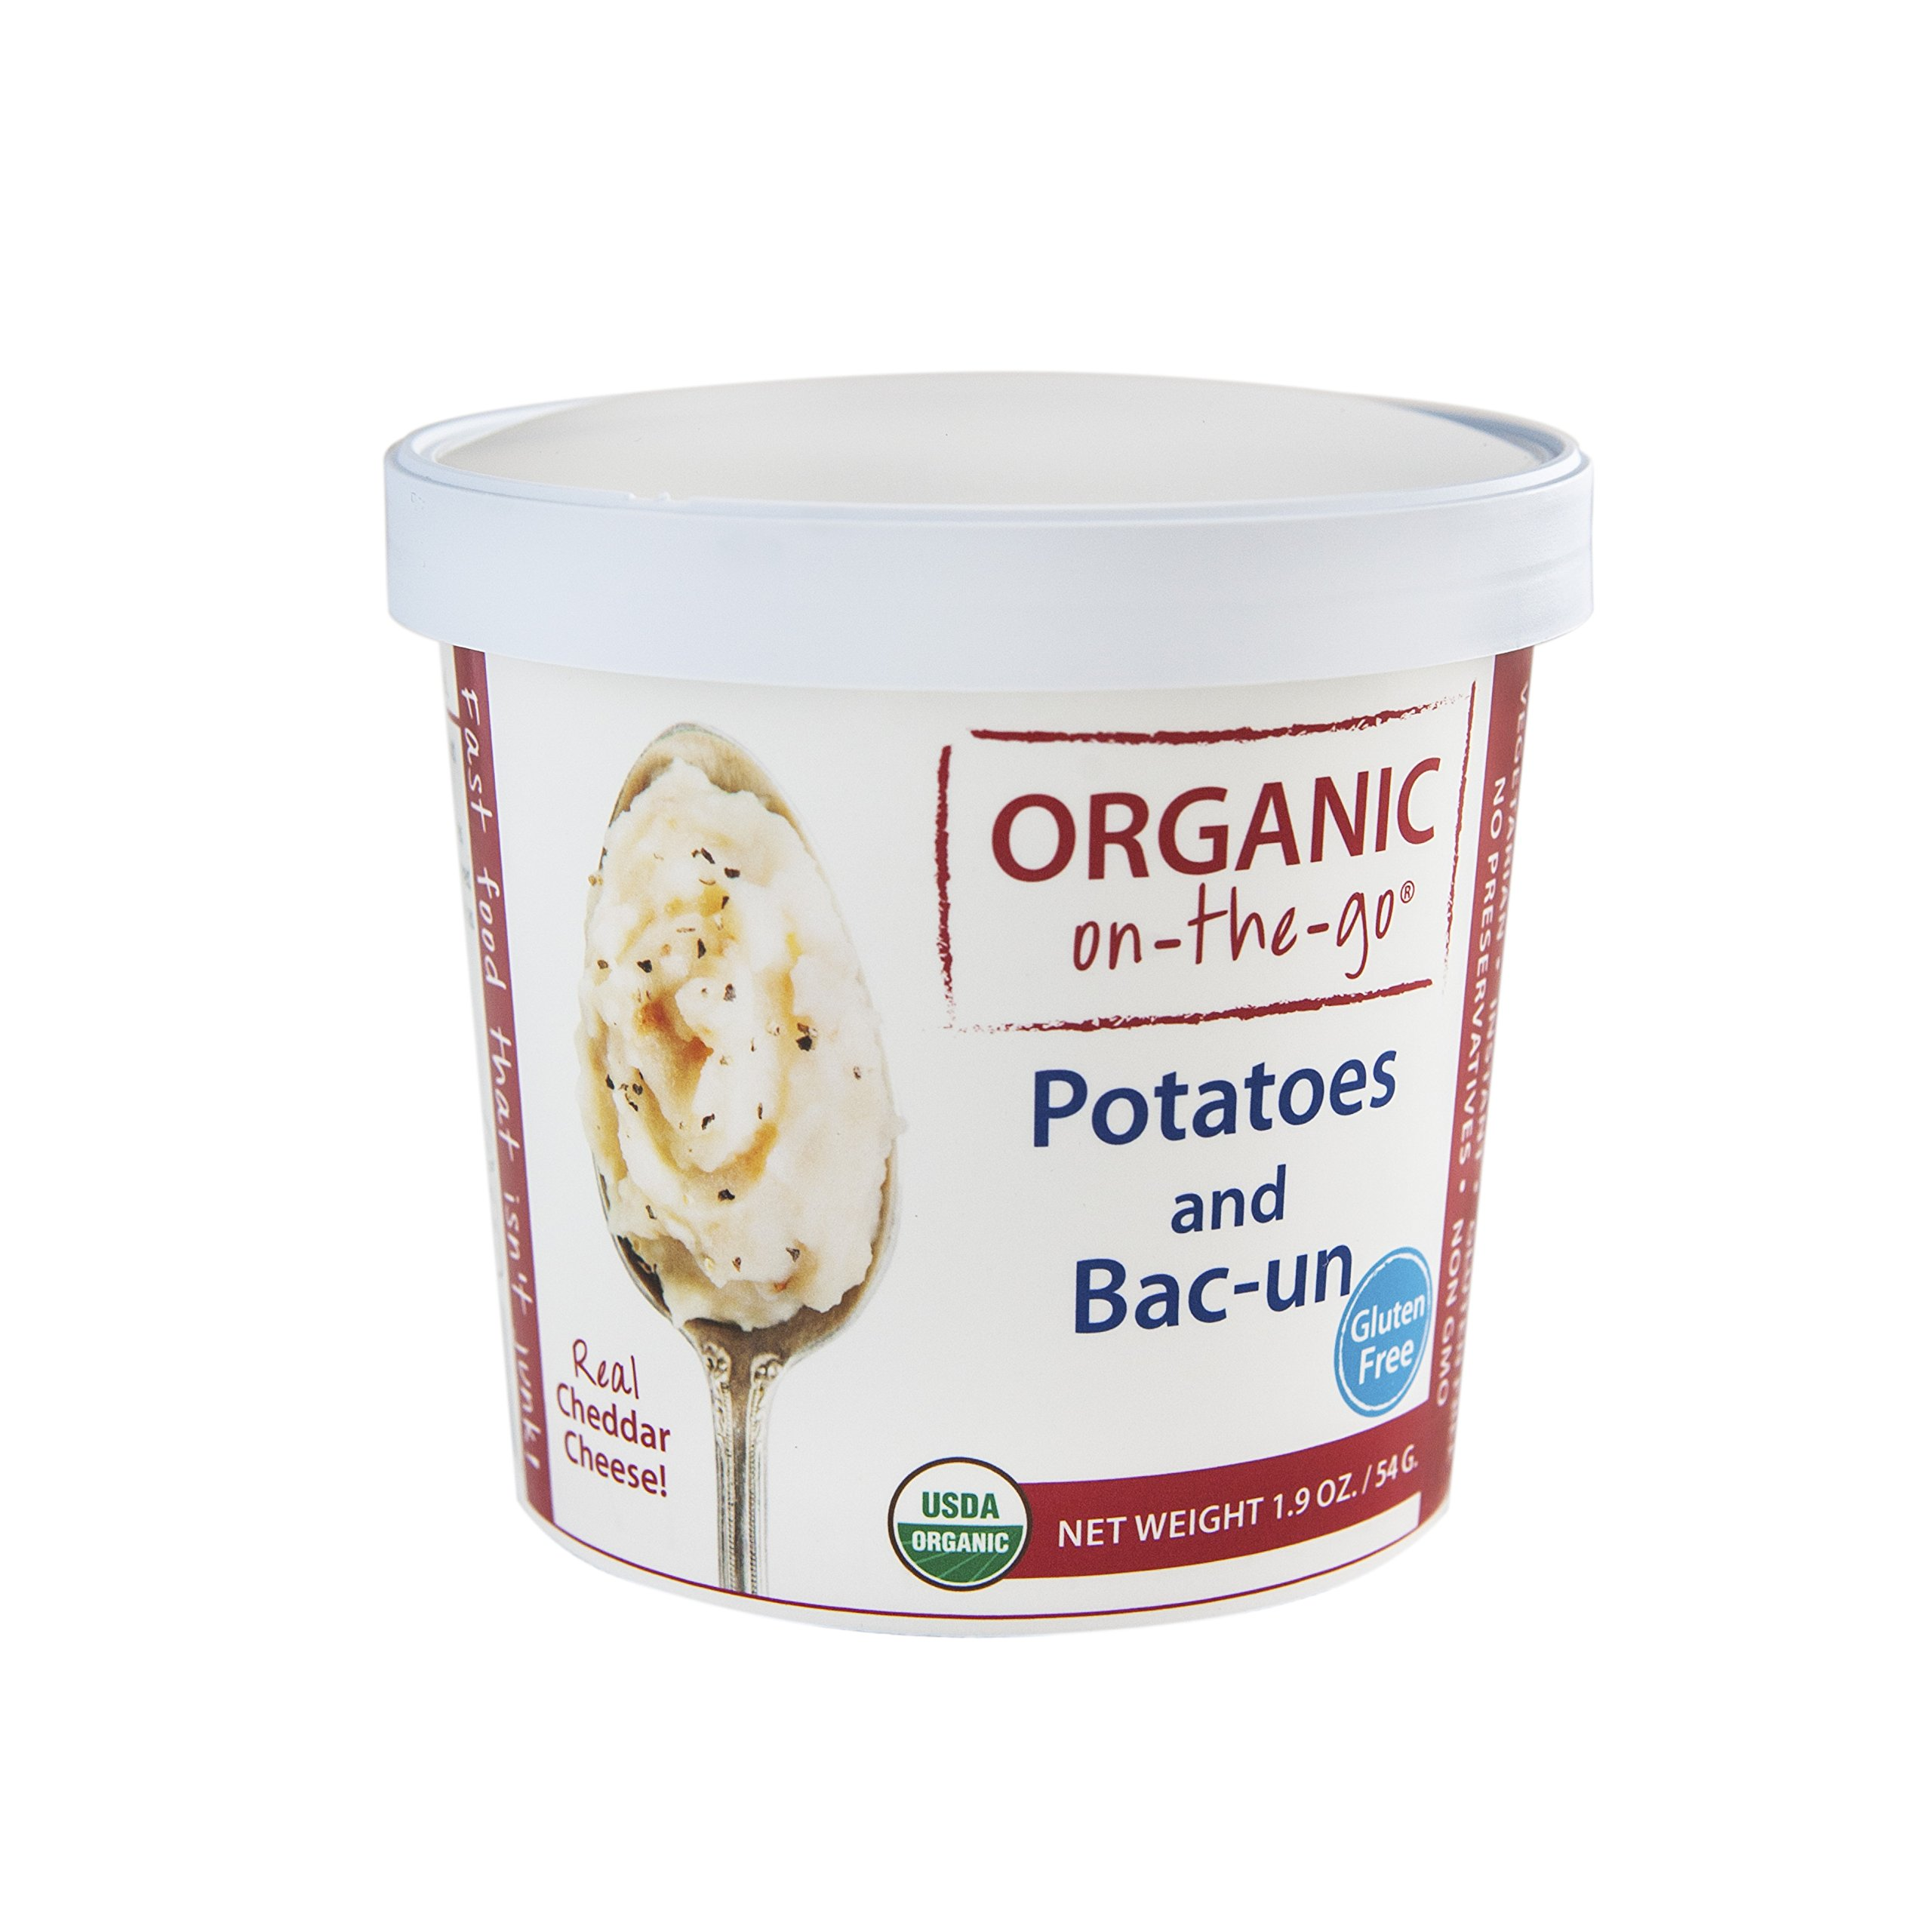 Organic on-the-go Potatoes and Bacon, 1.9 Ounce